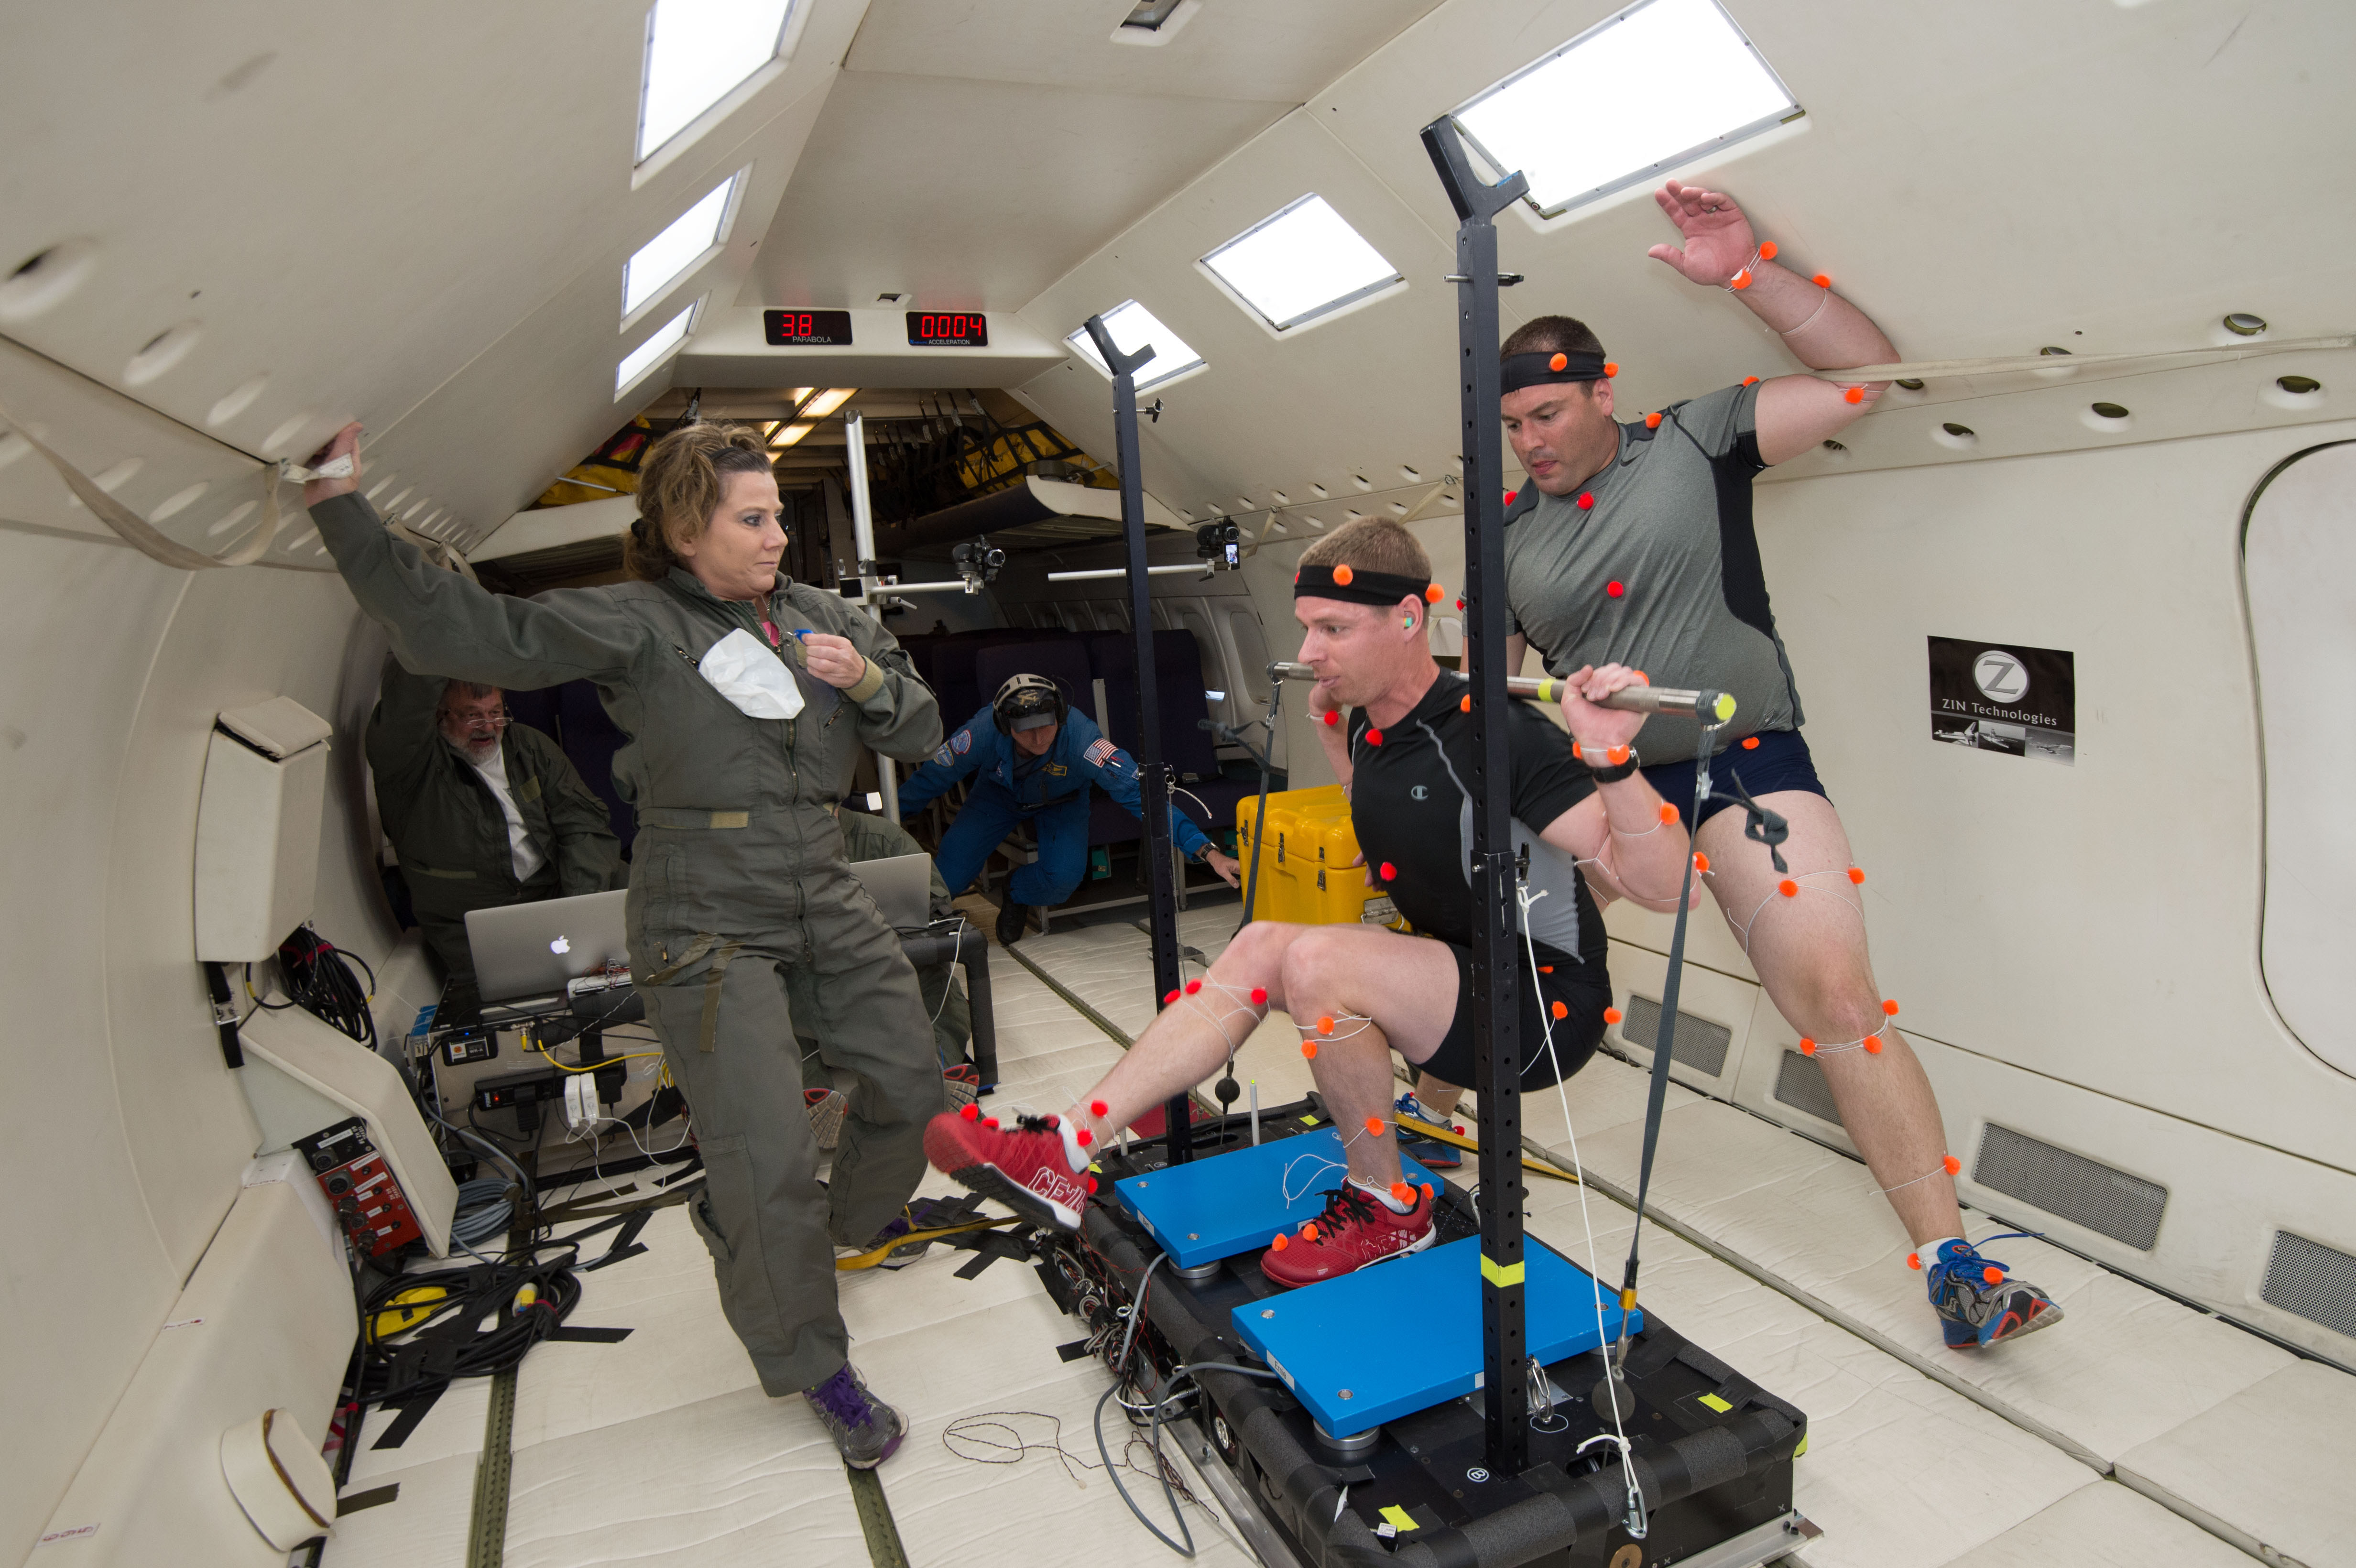 Improving The Efficacy of Resistive Exercise Microgravity Countermeasures For Musculoskeletal Health and Function Using Biomechanical Simulation (First Award Fellowship)